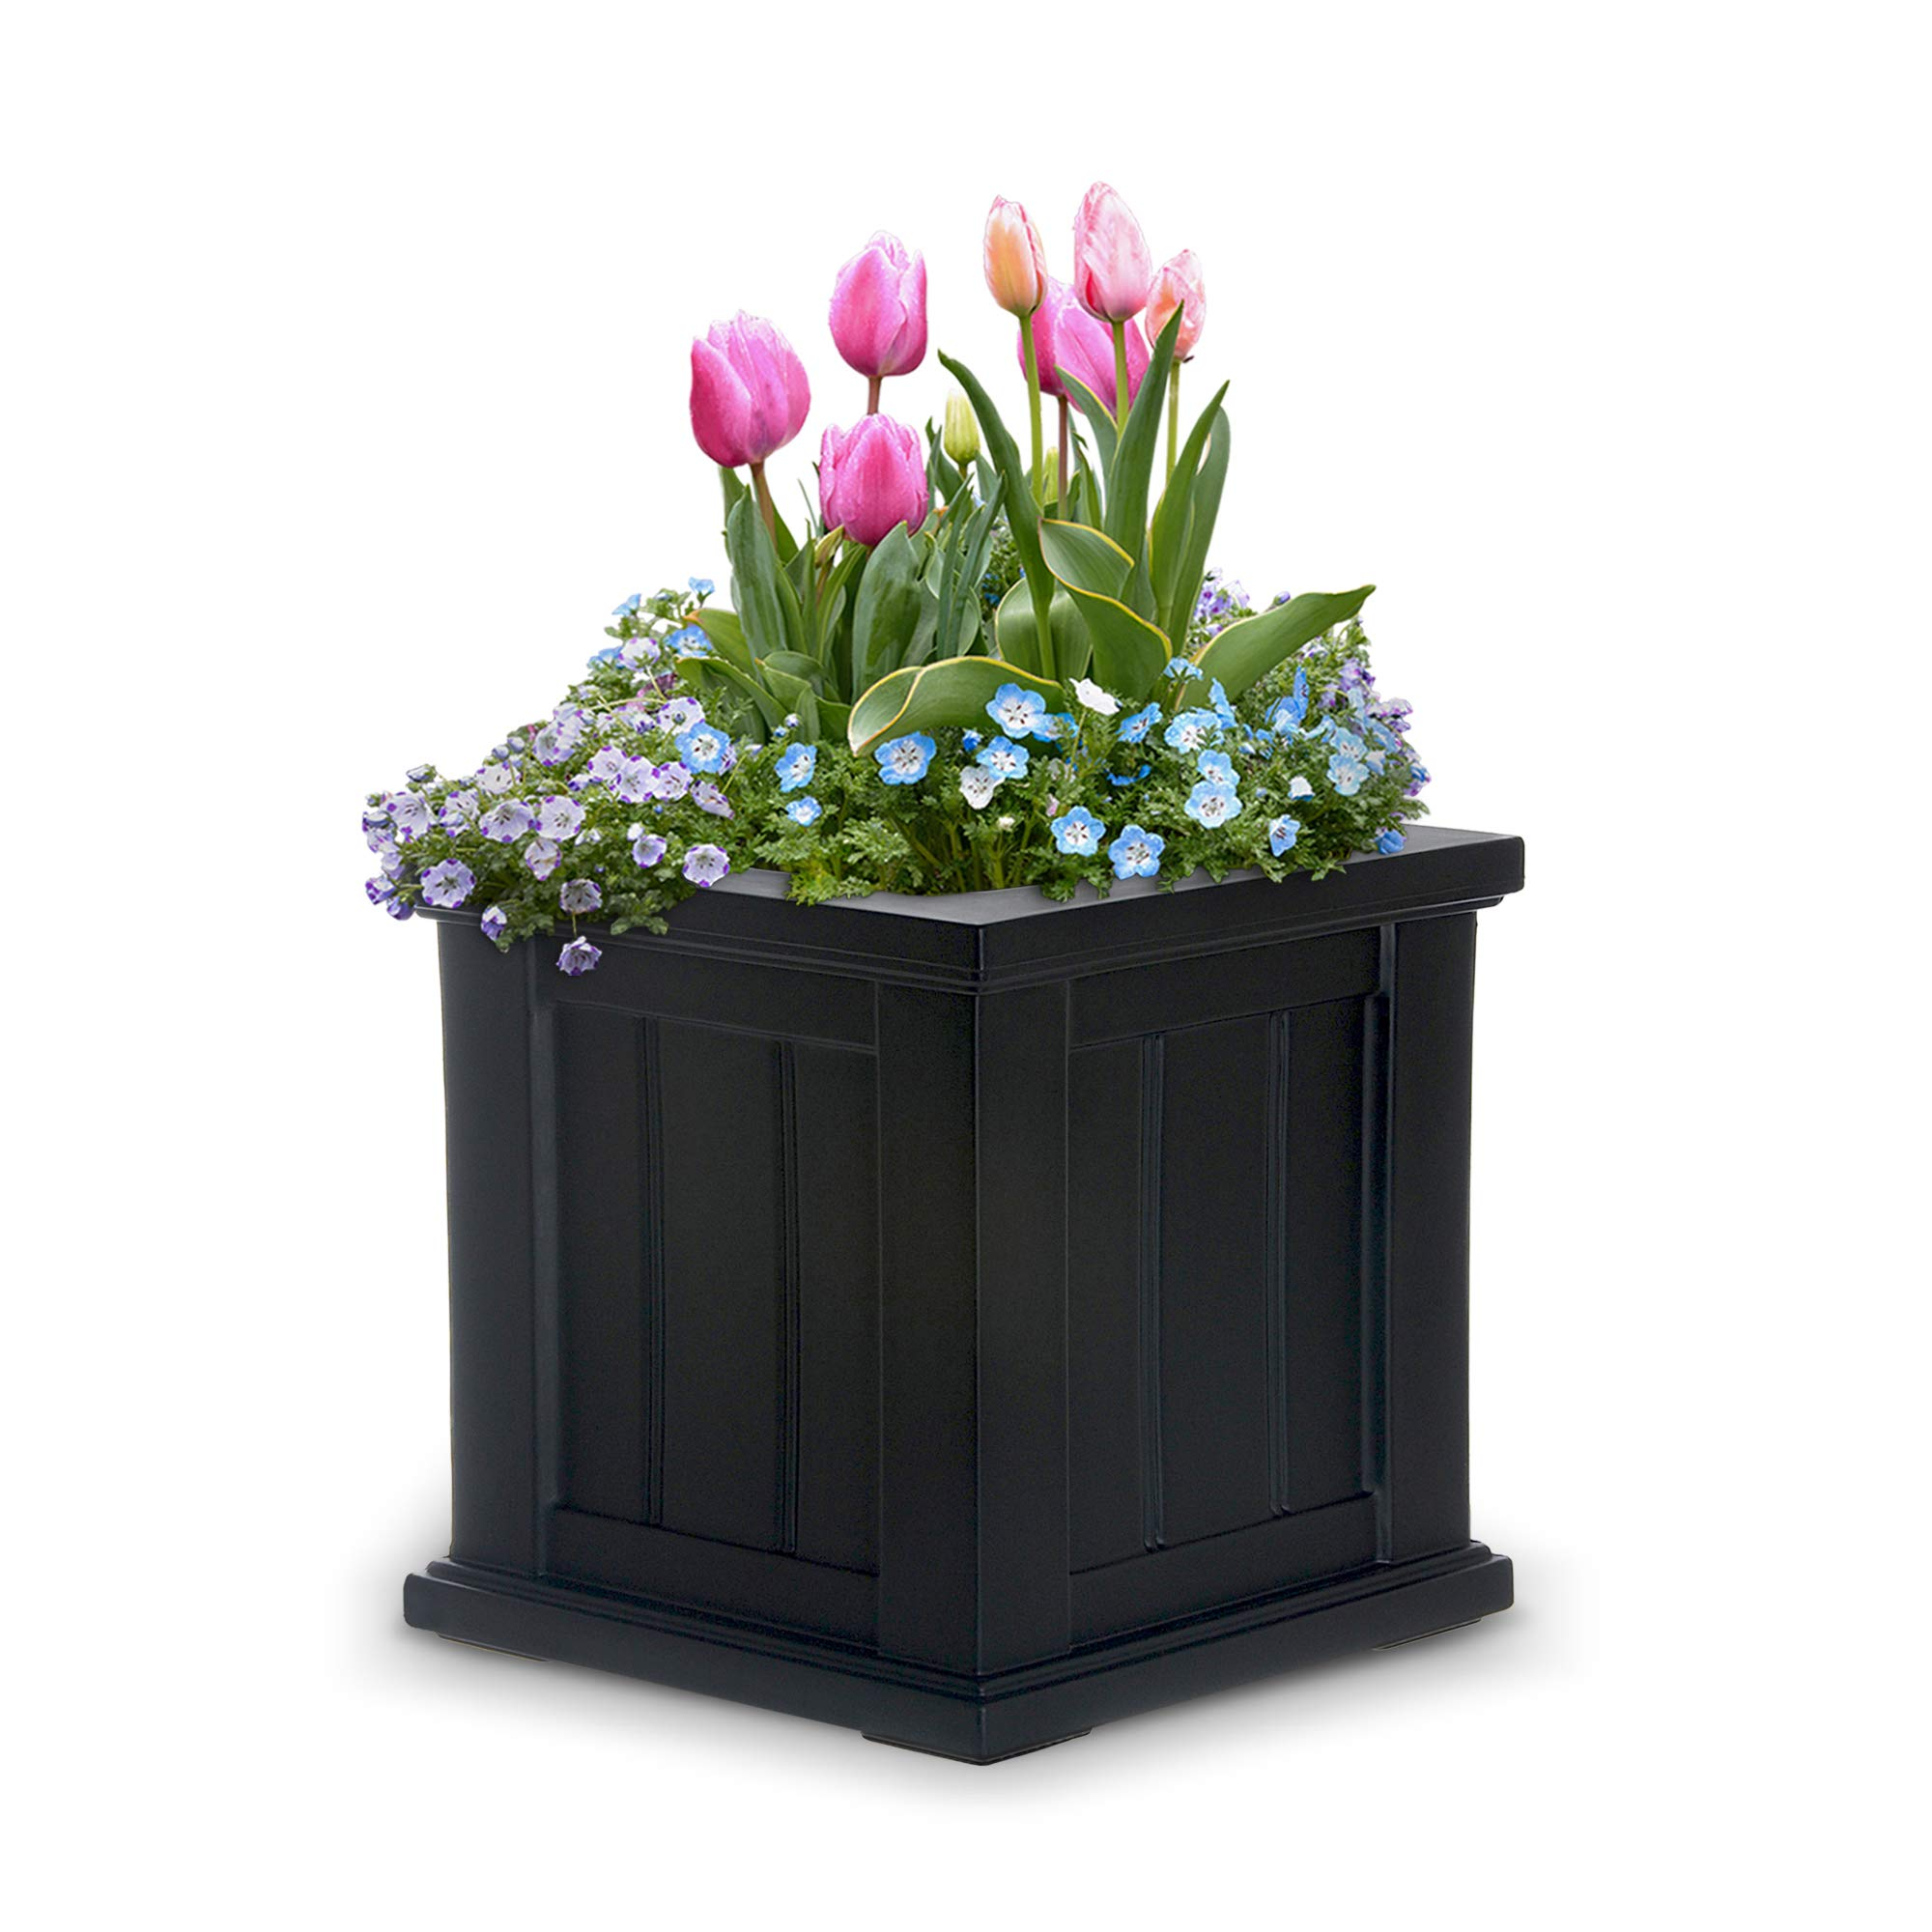 Mayne 4836B Cape Cod Planter, Black, 14 -Inch